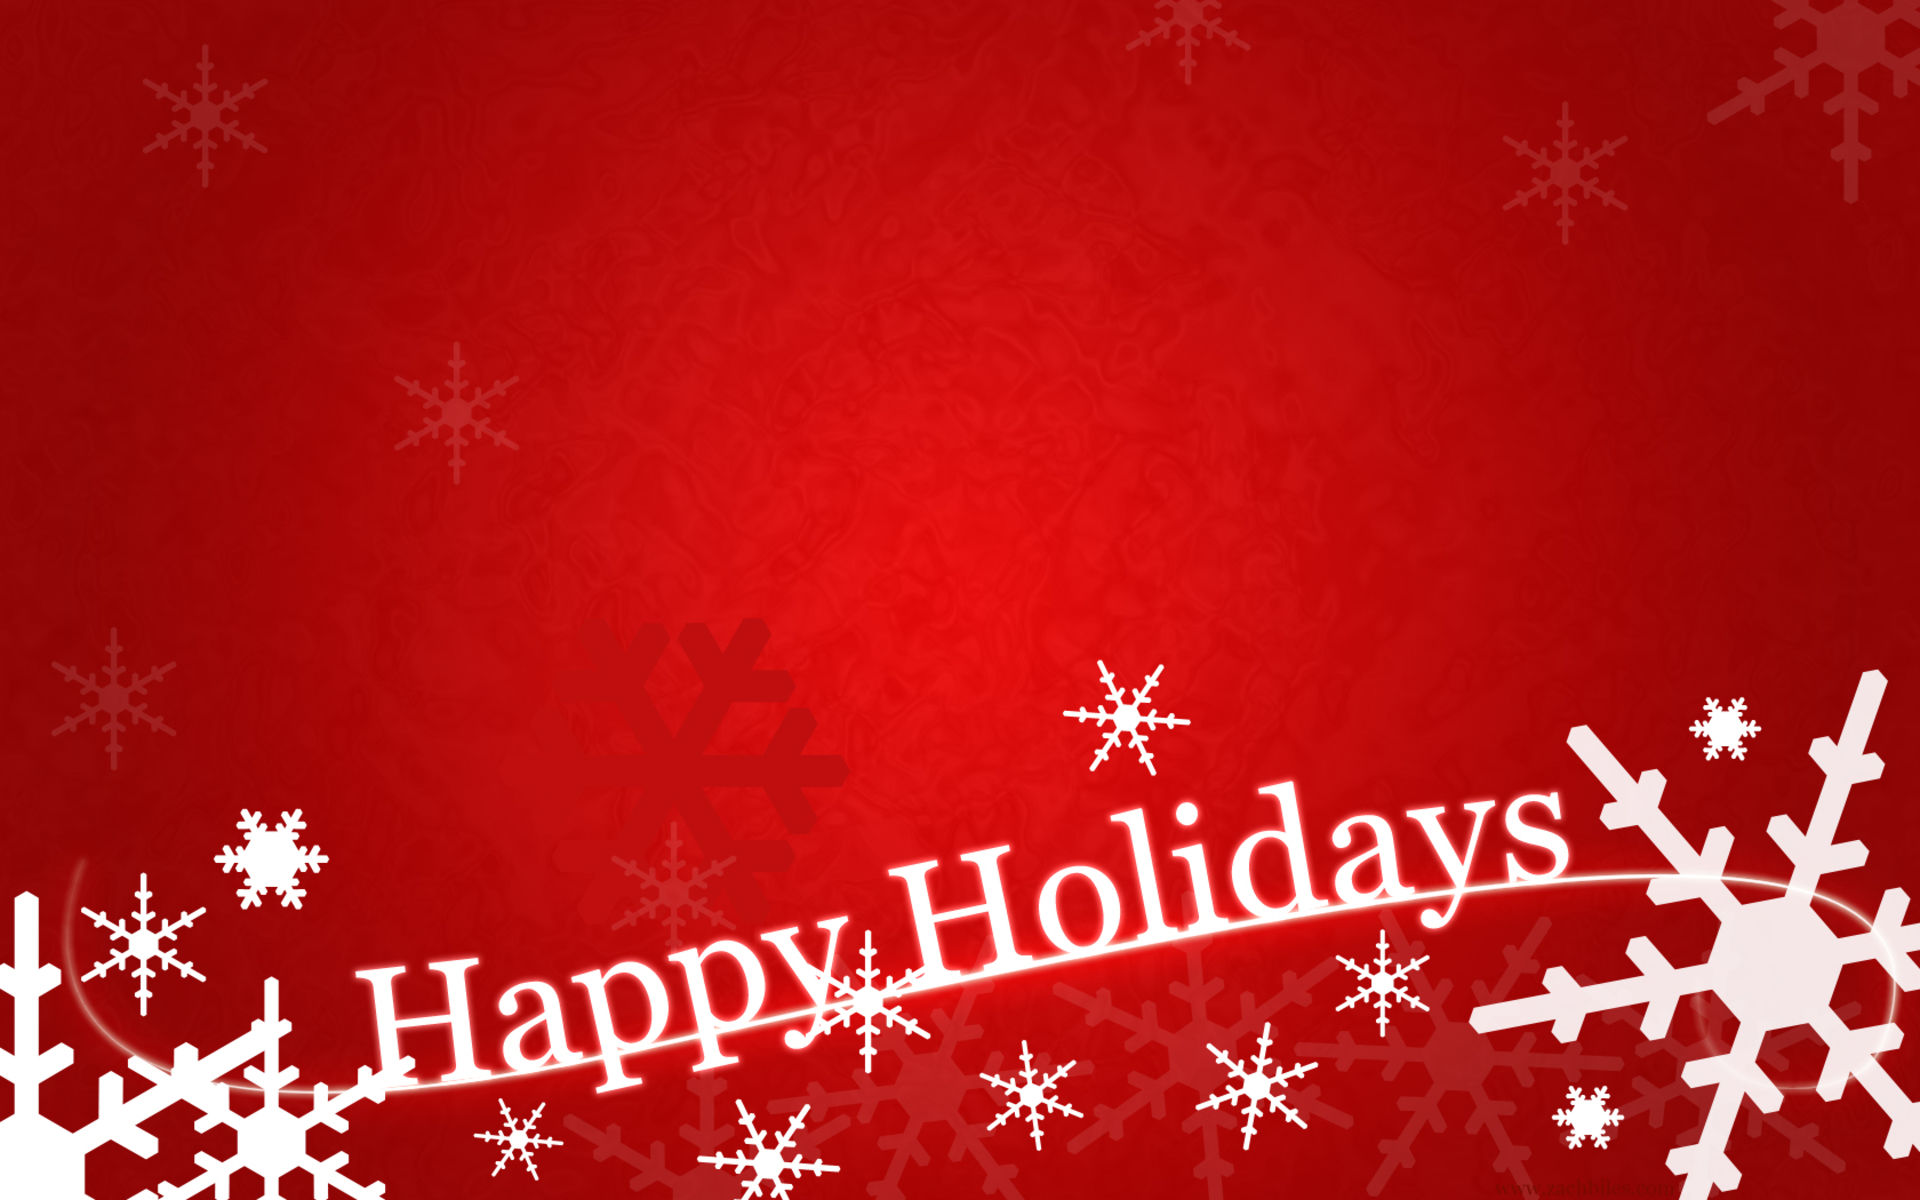 Happy Holidays Background